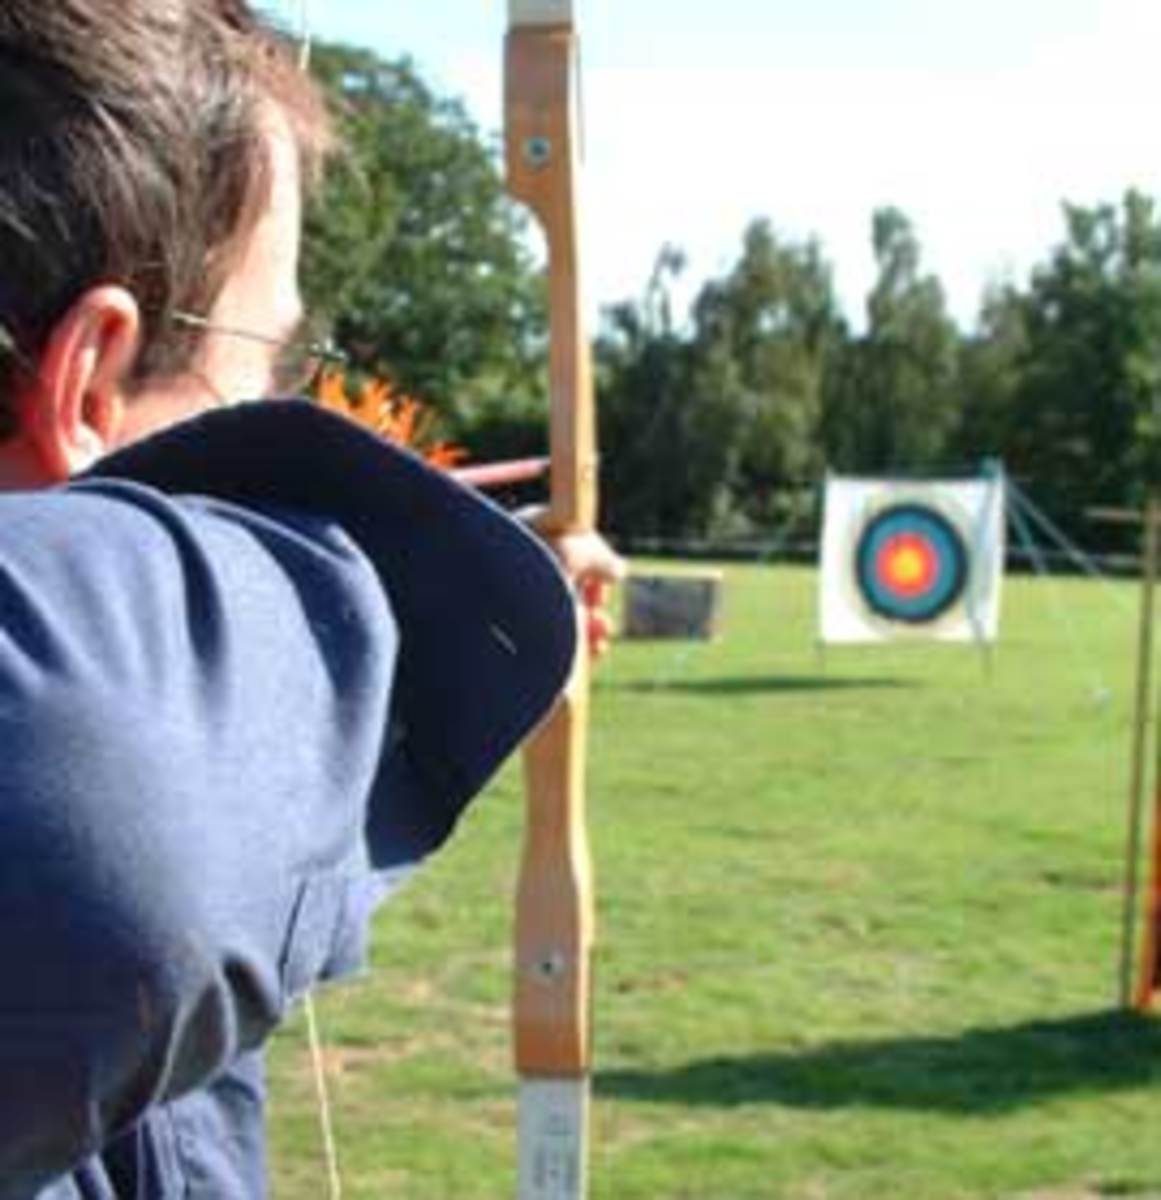 The skill of archery is a wonderful way to learn focus and how to quiet the mind - even after a hard days work.